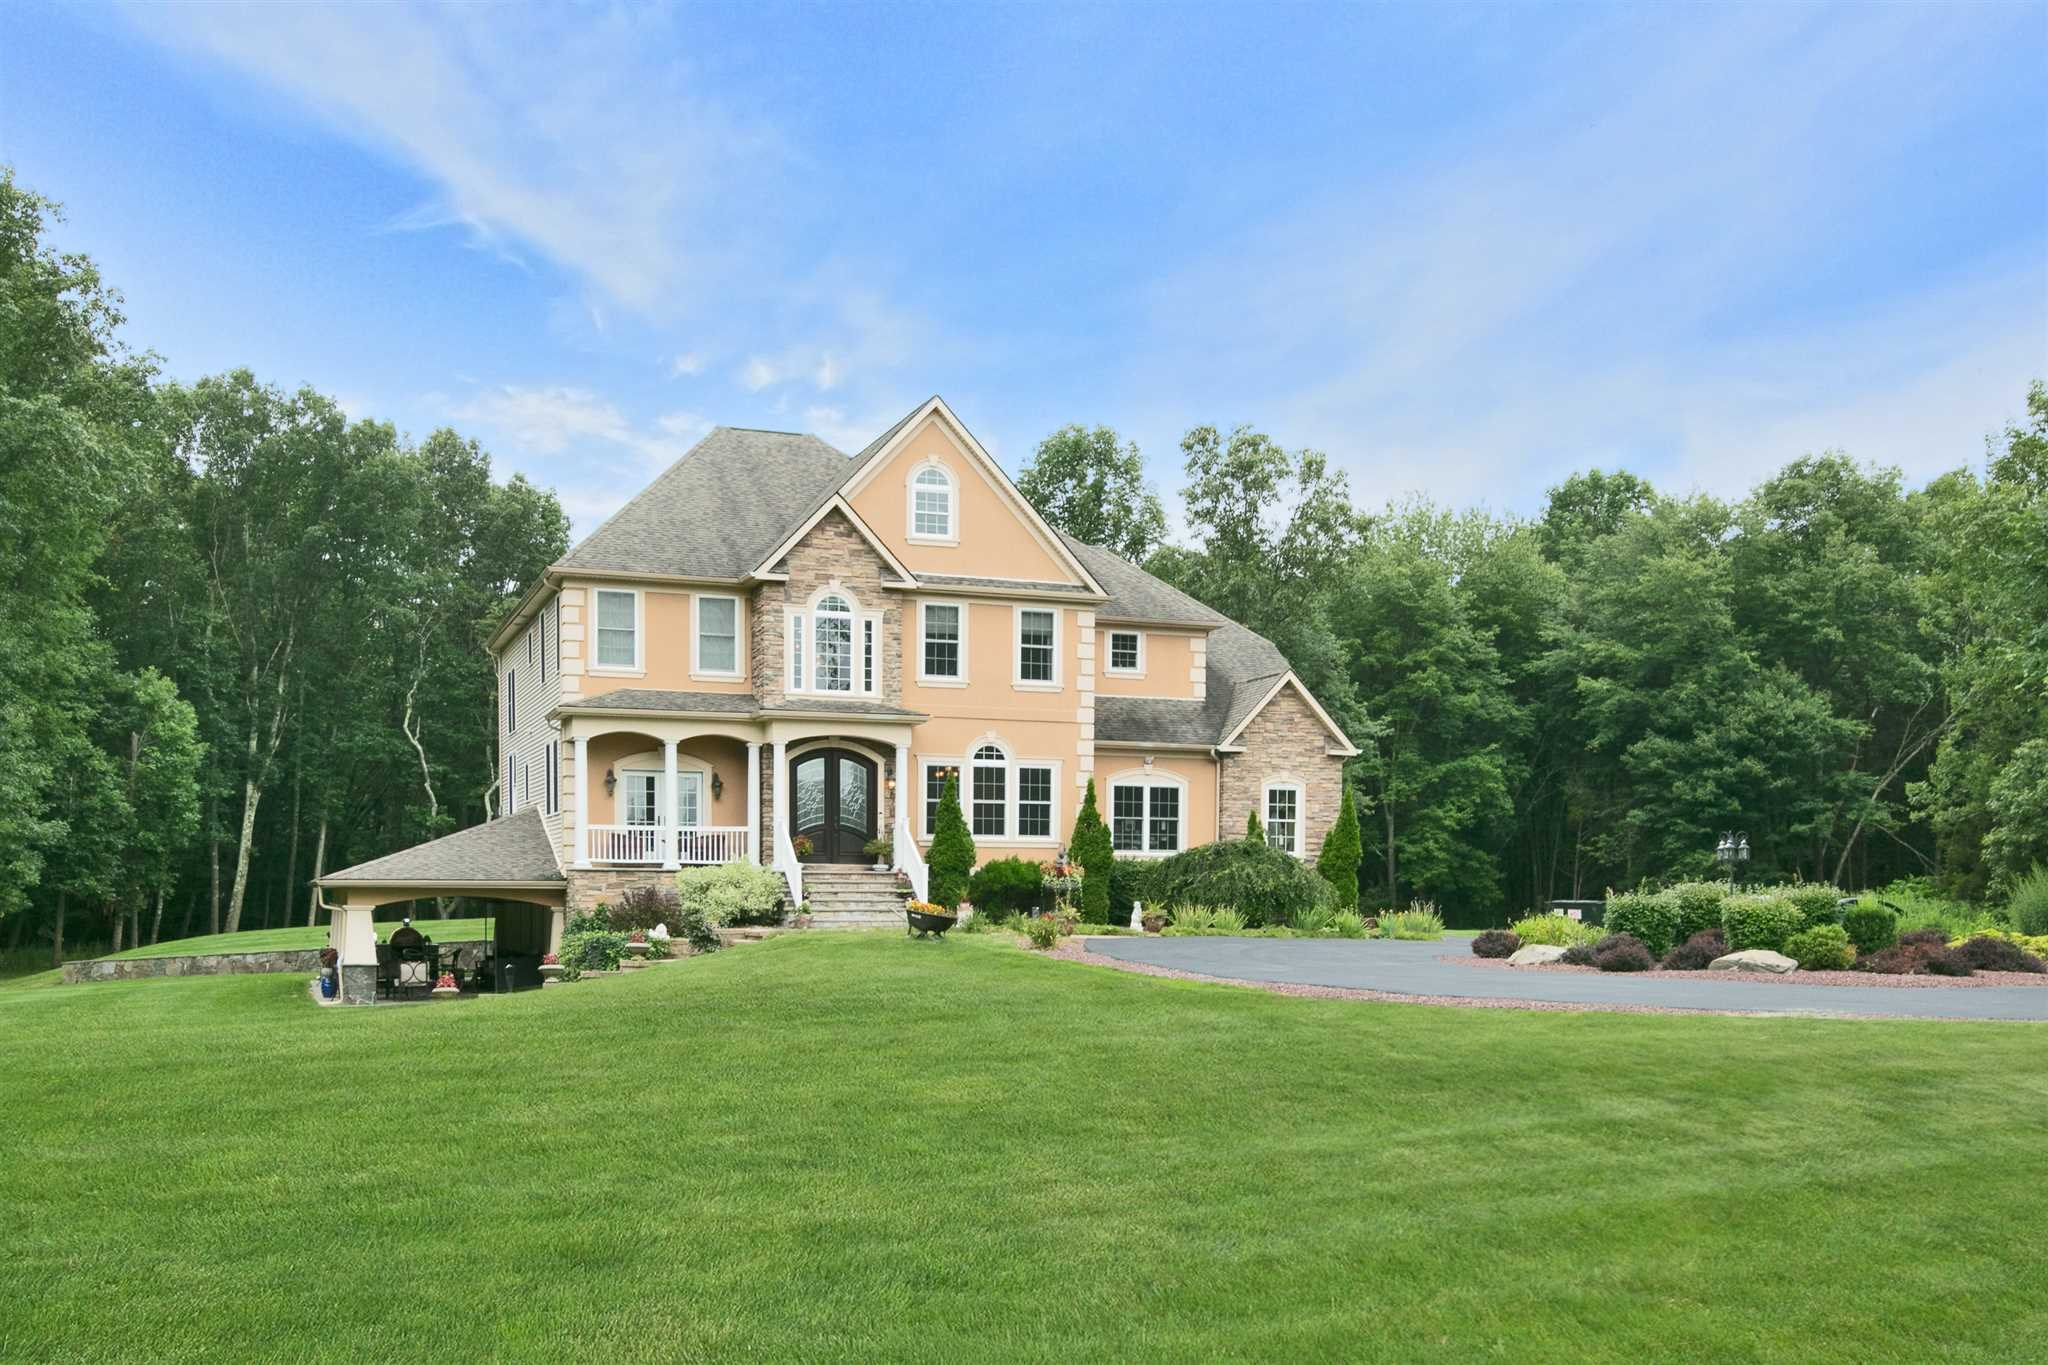 Single Family Home for Sale at 10 TODD HILL ROAD 10 TODD HILL ROAD La Grange, New York 12603 United States